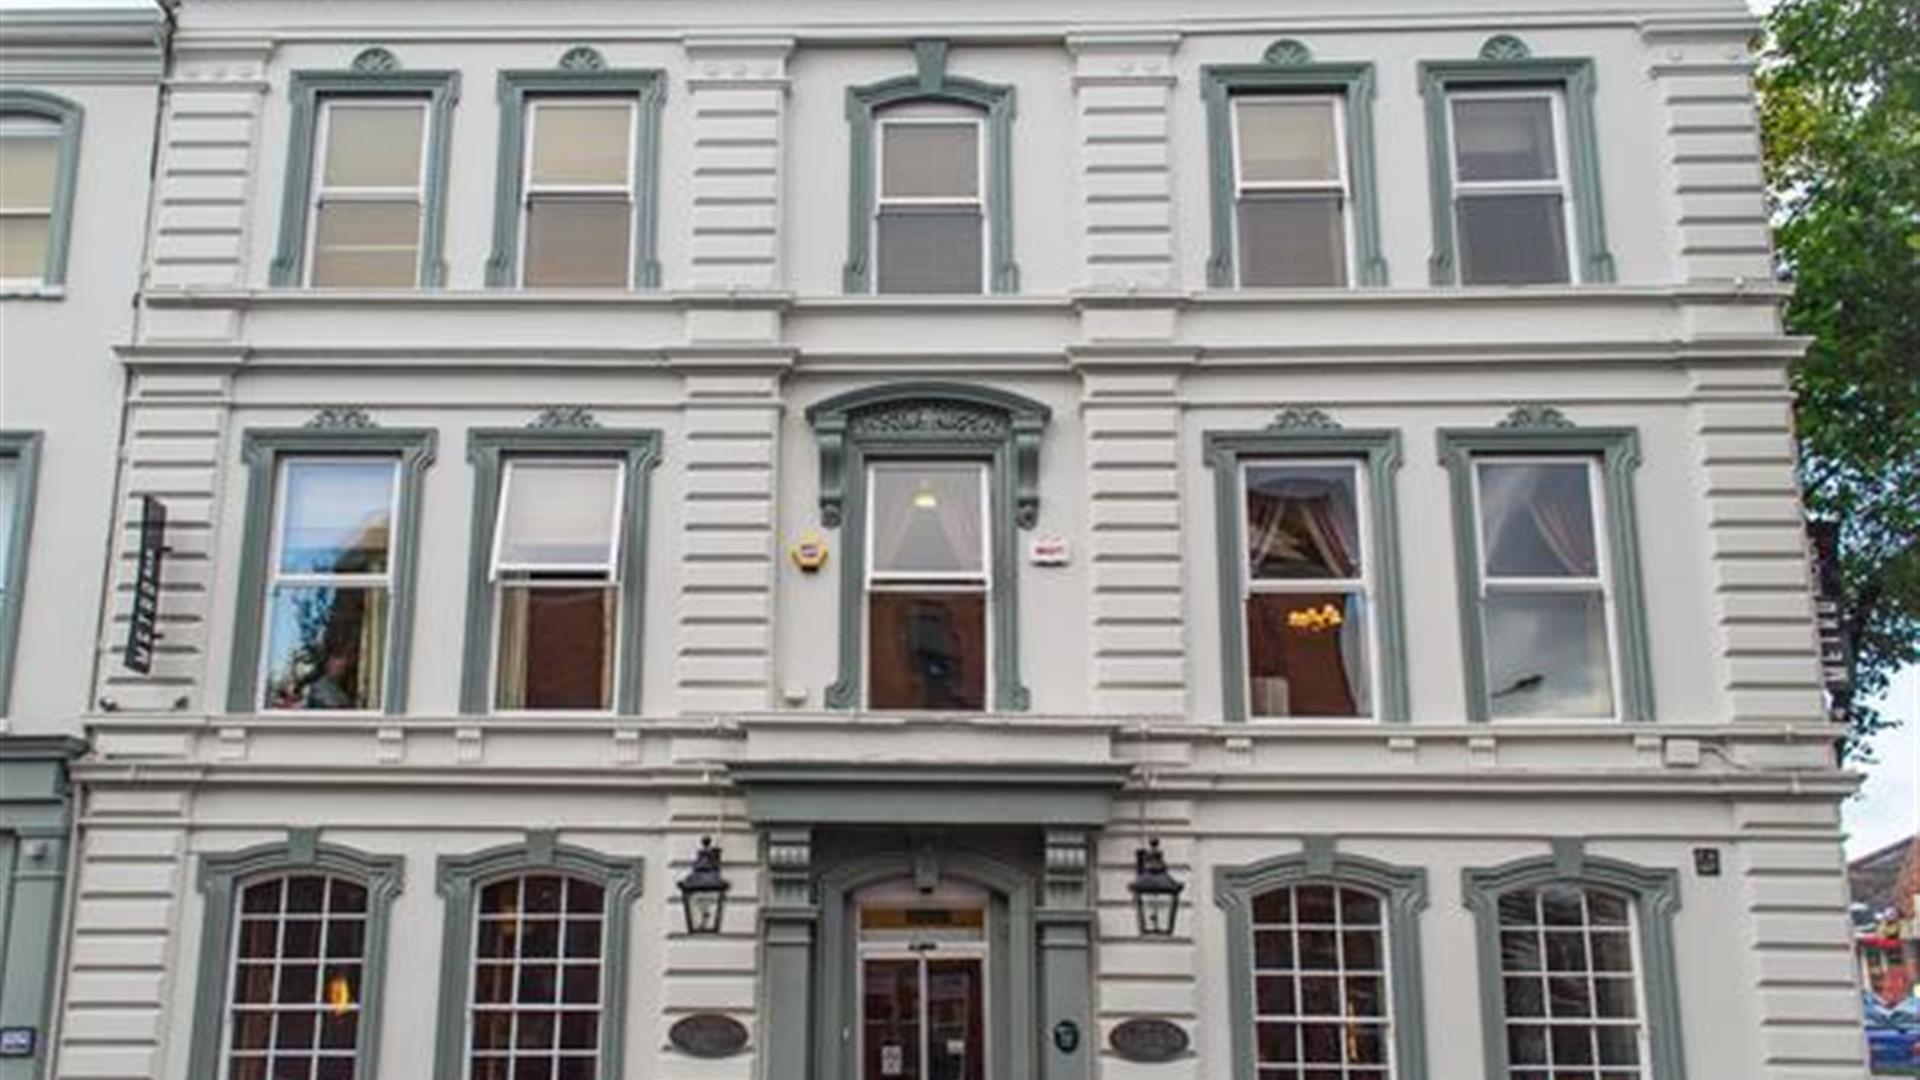 The 1852 Hotel